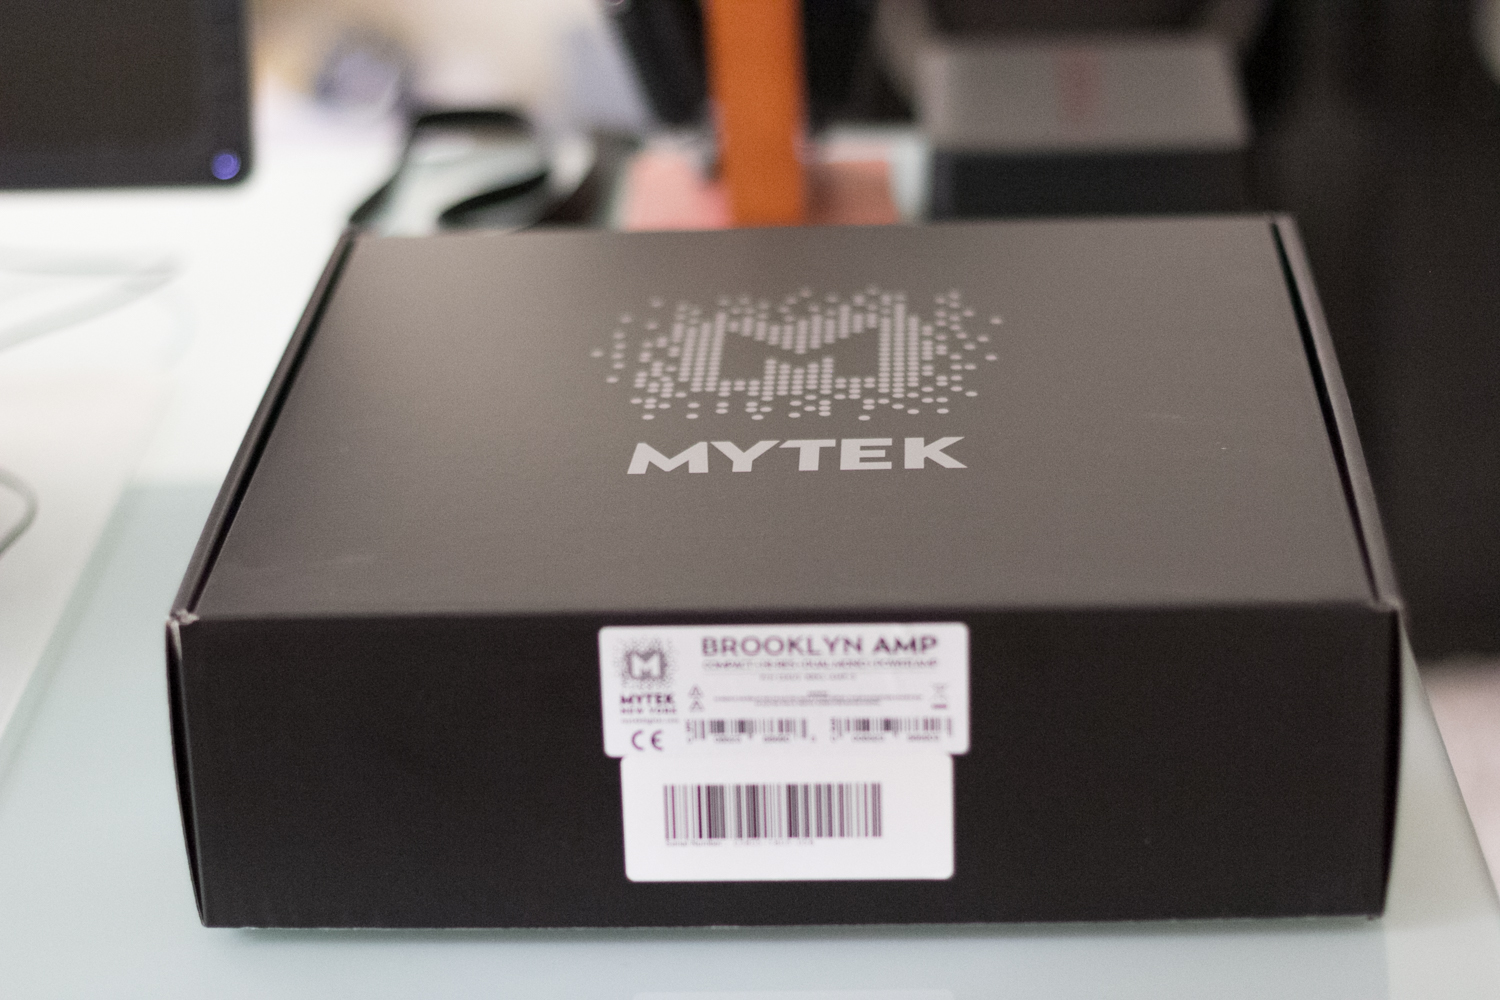 Mytek Brooklyn AMP